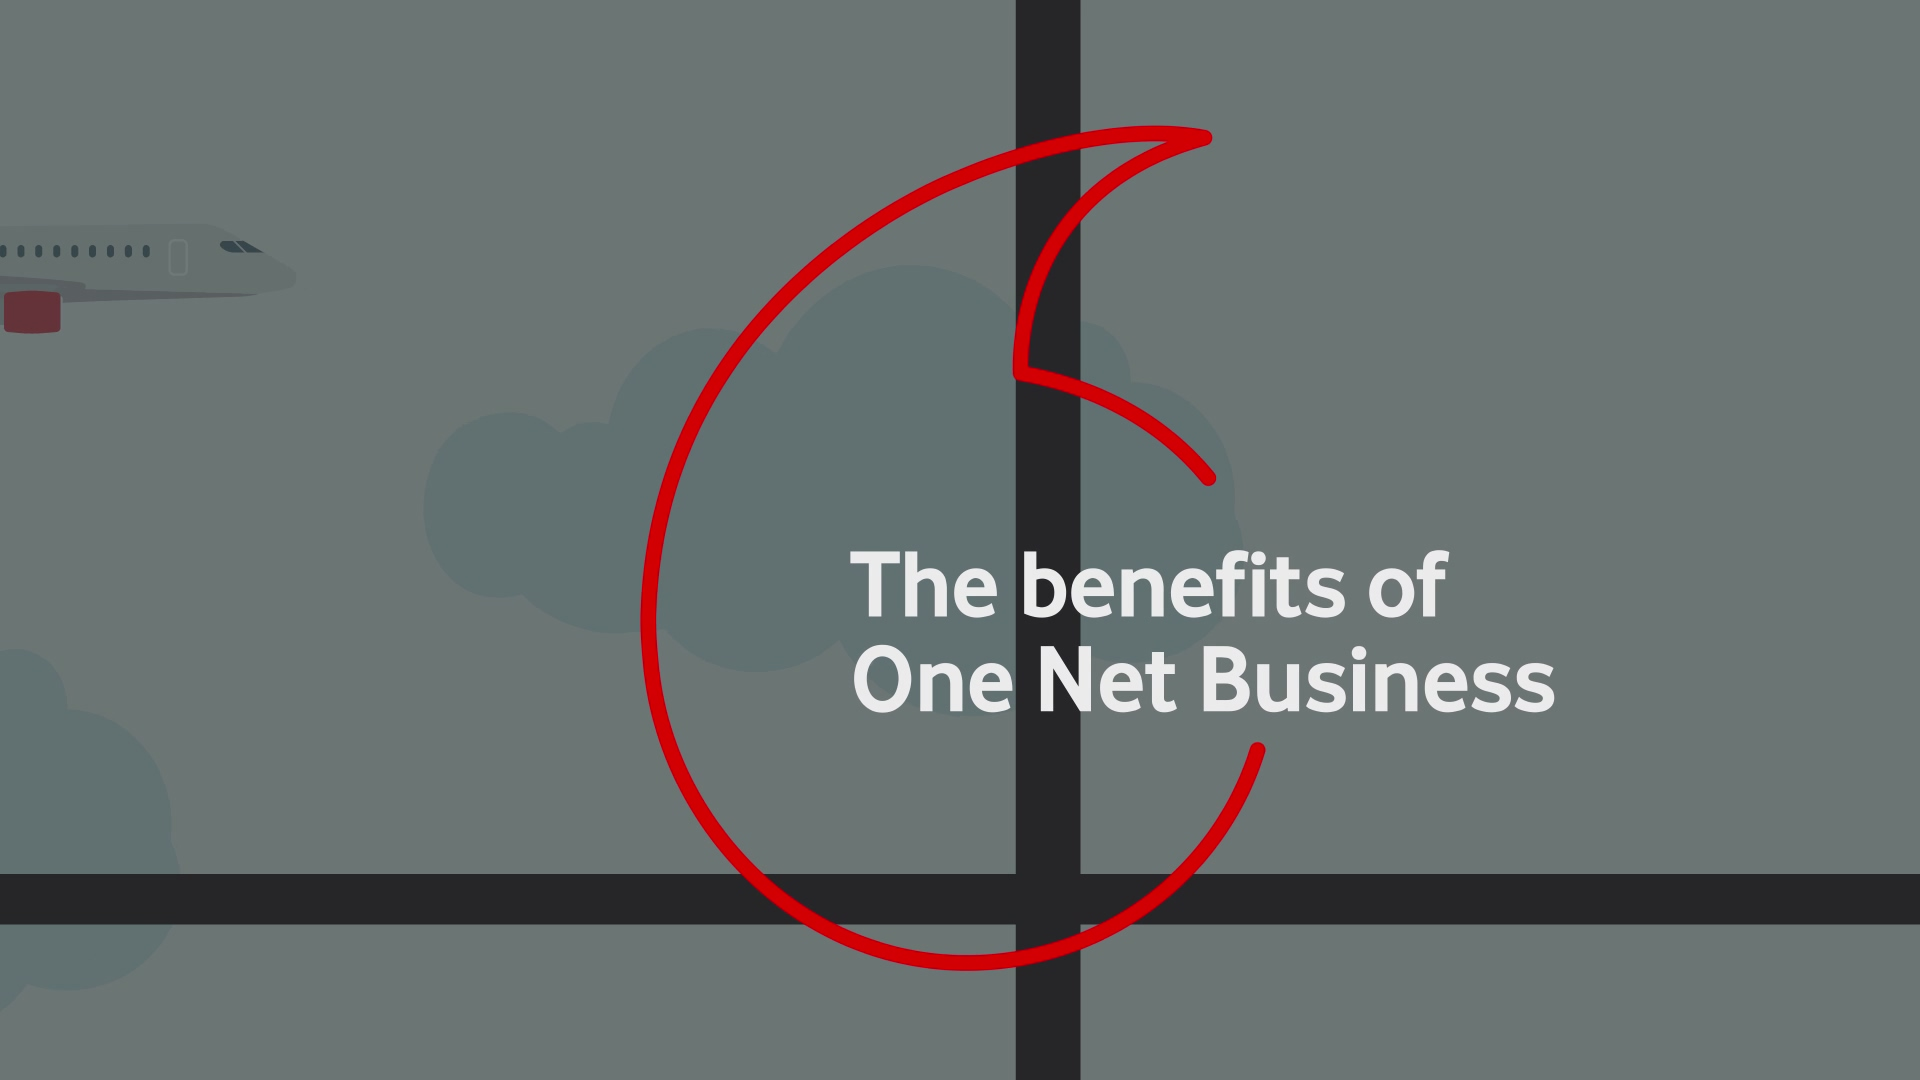 Vodafone One Net Business Benefits Video (With Subtitles) (Customer Facing)-1